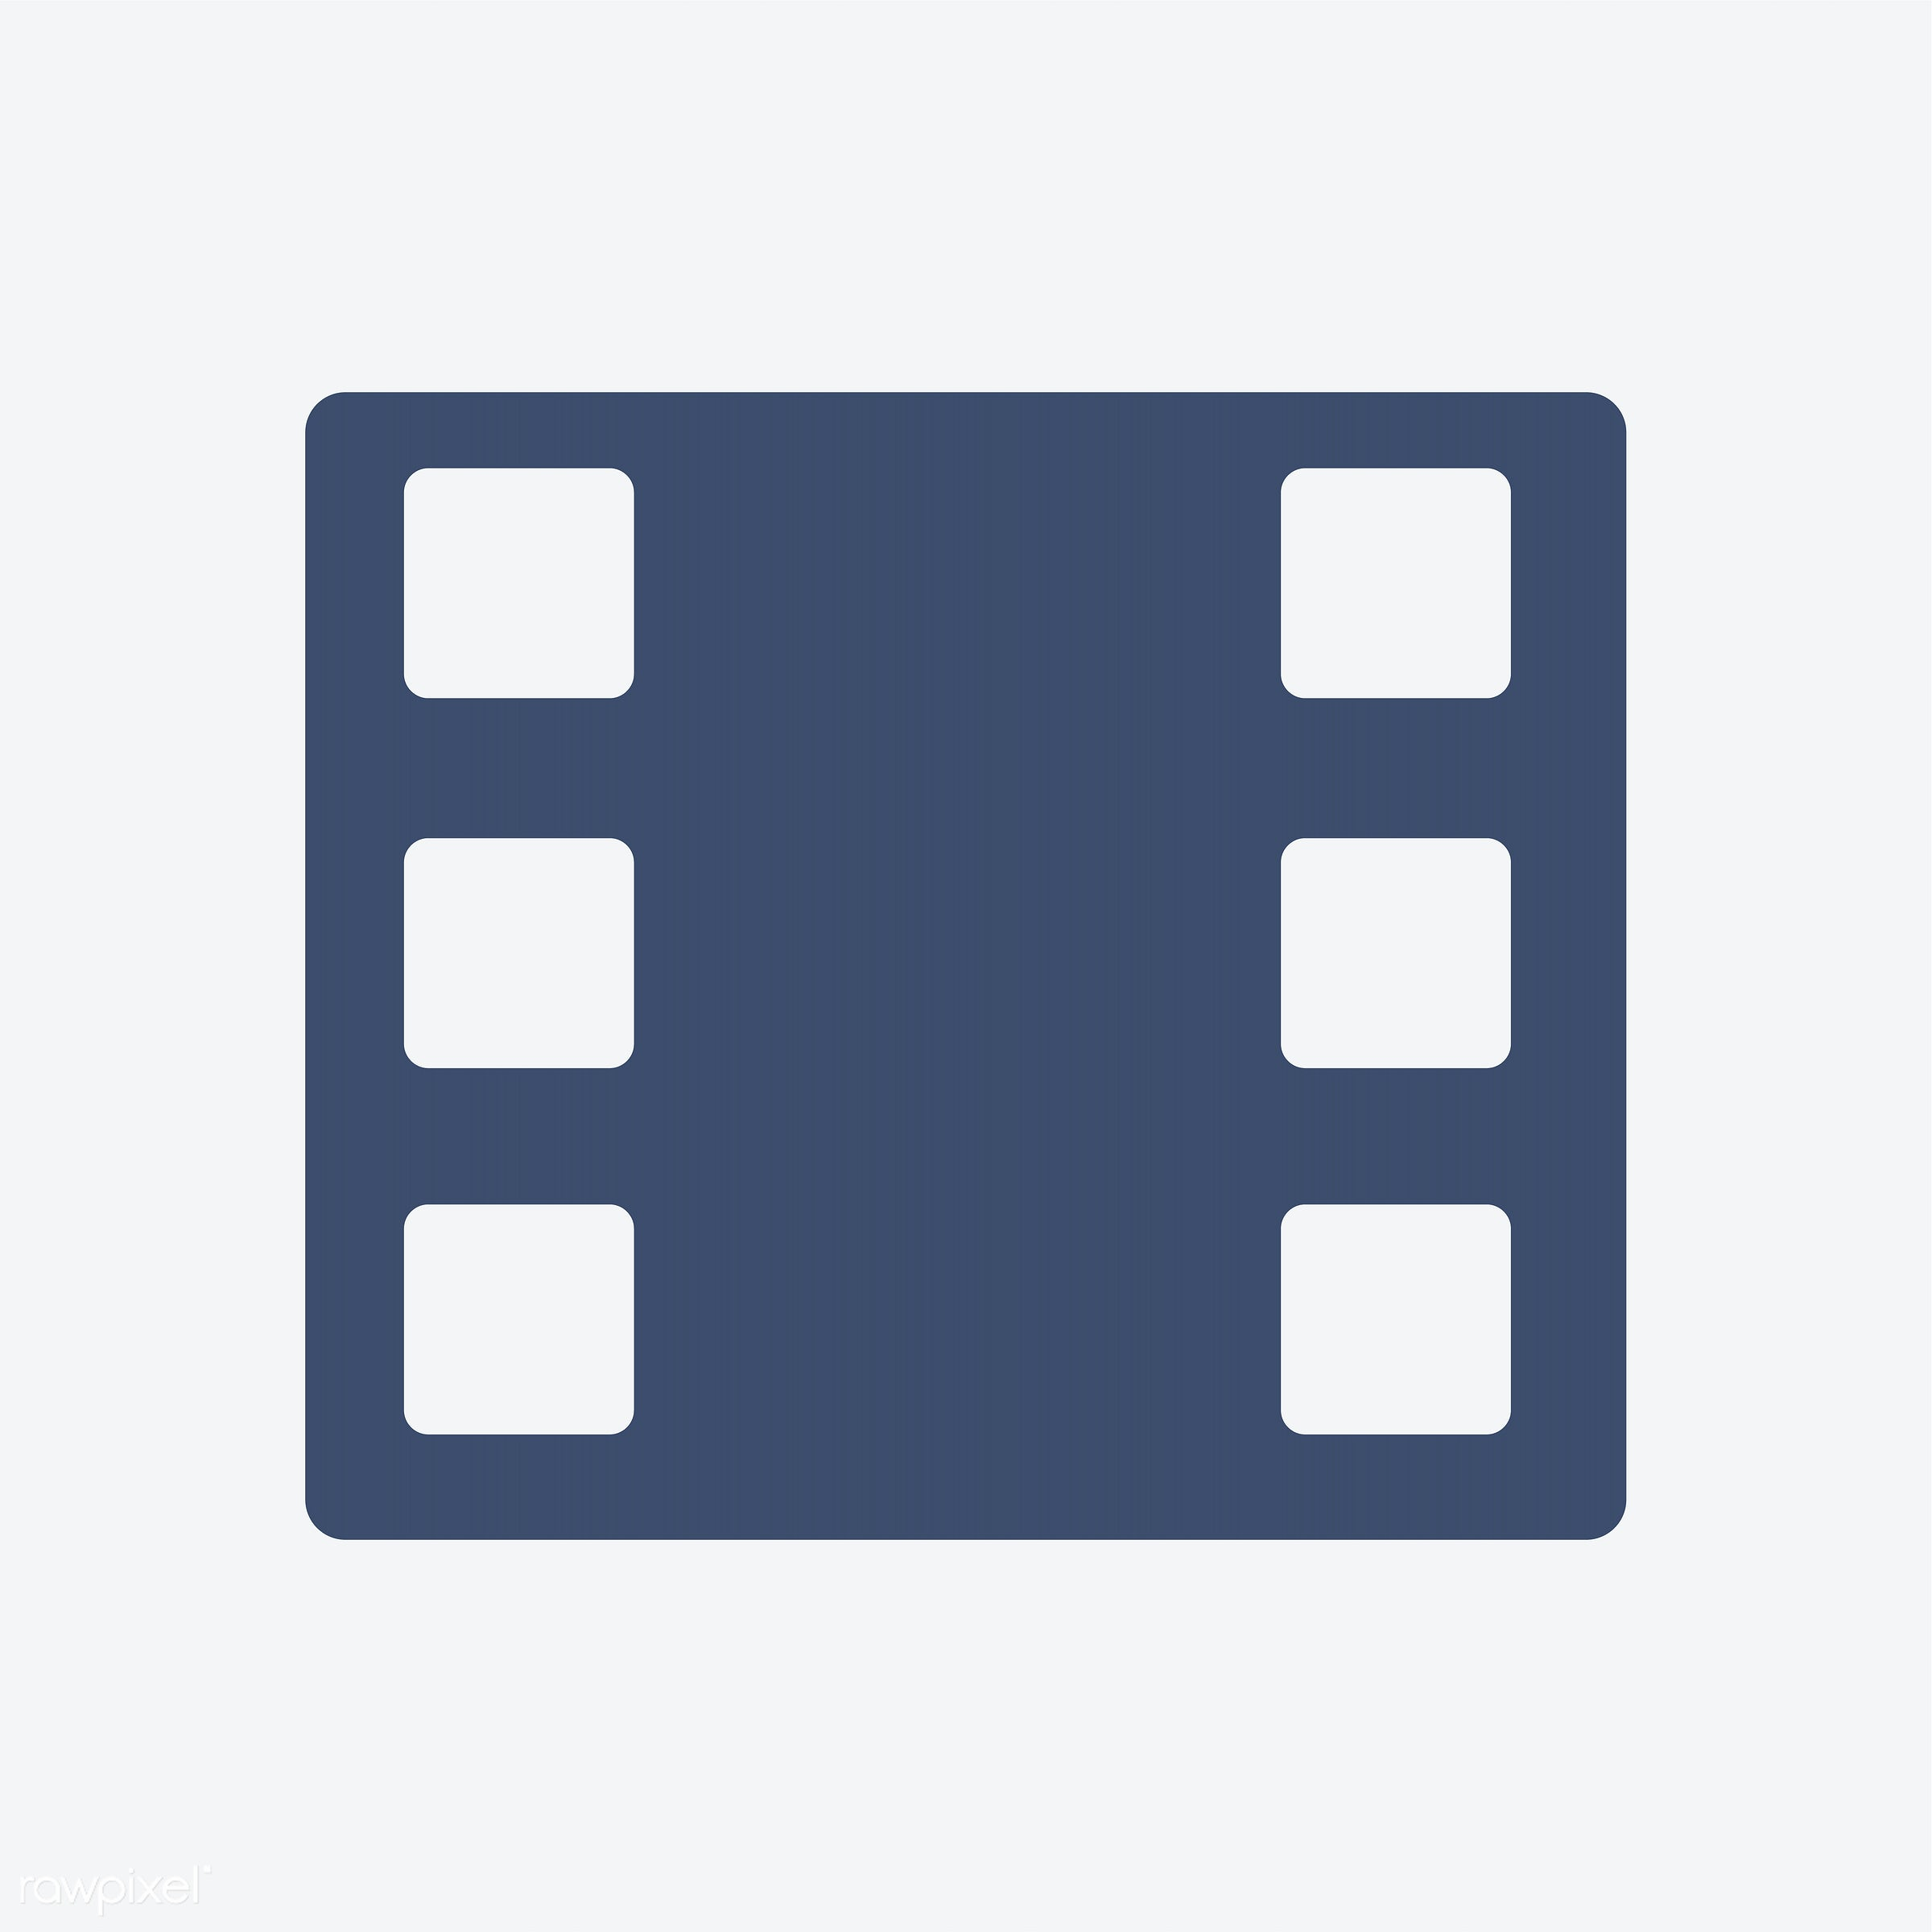 Classical filmstrip isolated on background - 35mm, art, blank, blue, camera, cinema, cinematography, classical, design,...